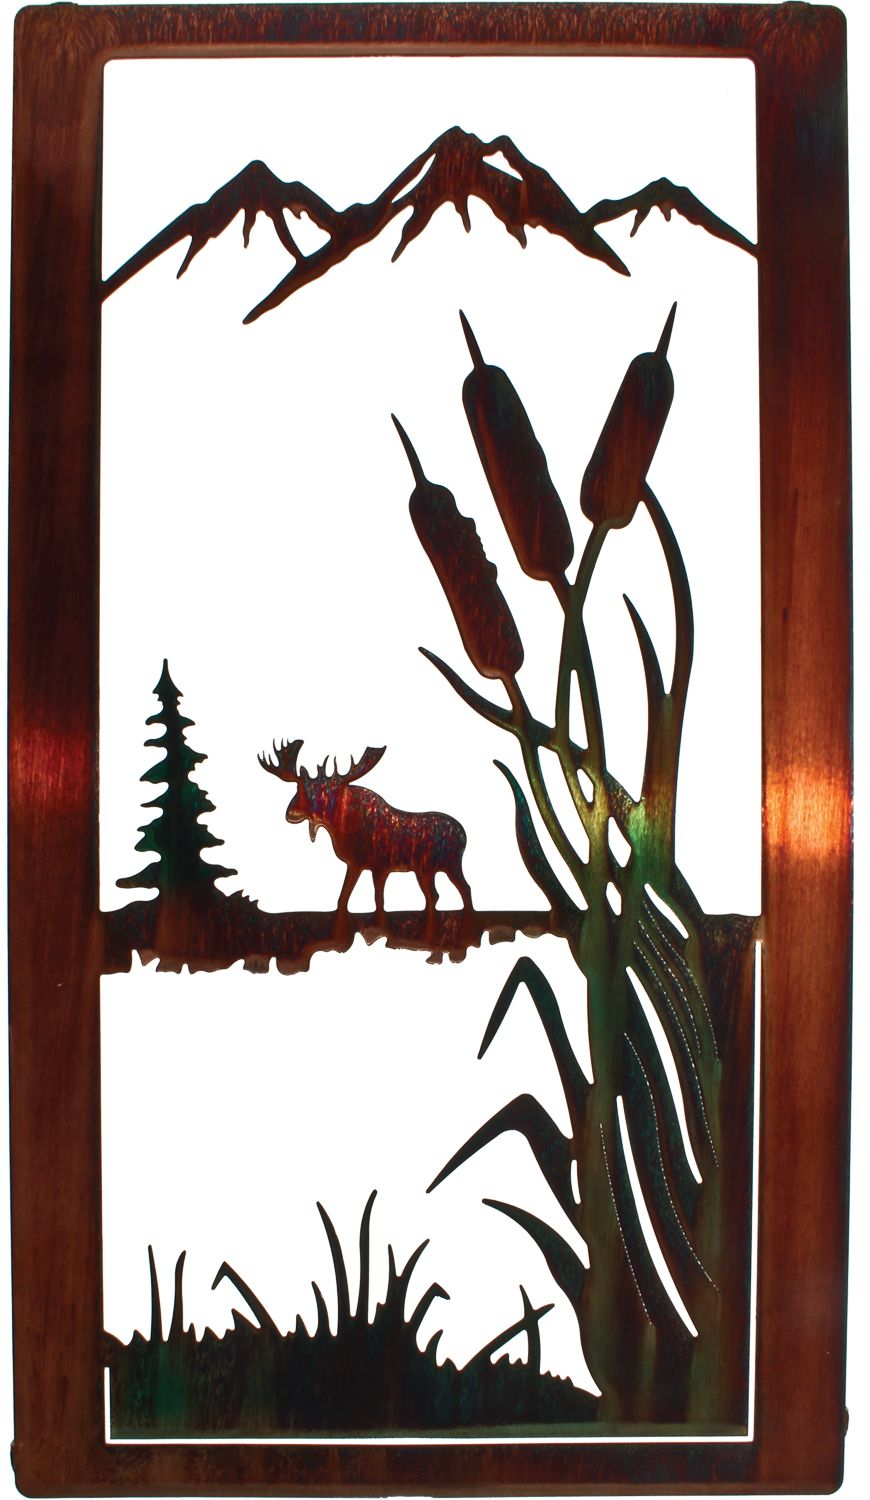 images about moose wall art on pinterest wolves deer and products: tree scene metal wall art